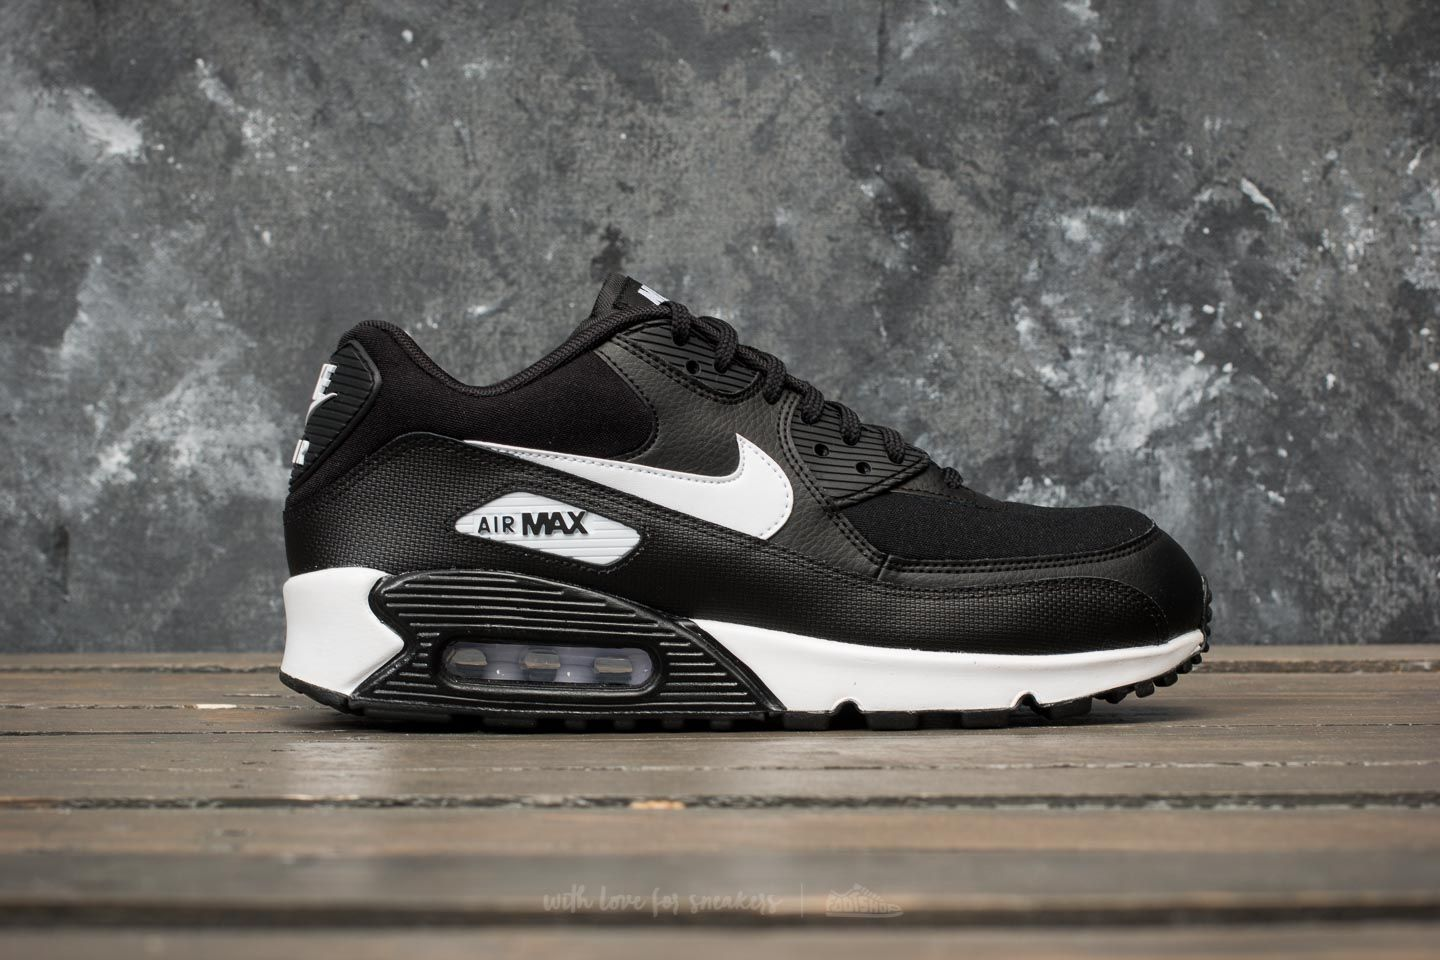 wholesale dealer 5b22d dba01 Nike Wmns Air Max 90 Black White at a great price 139 € buy at